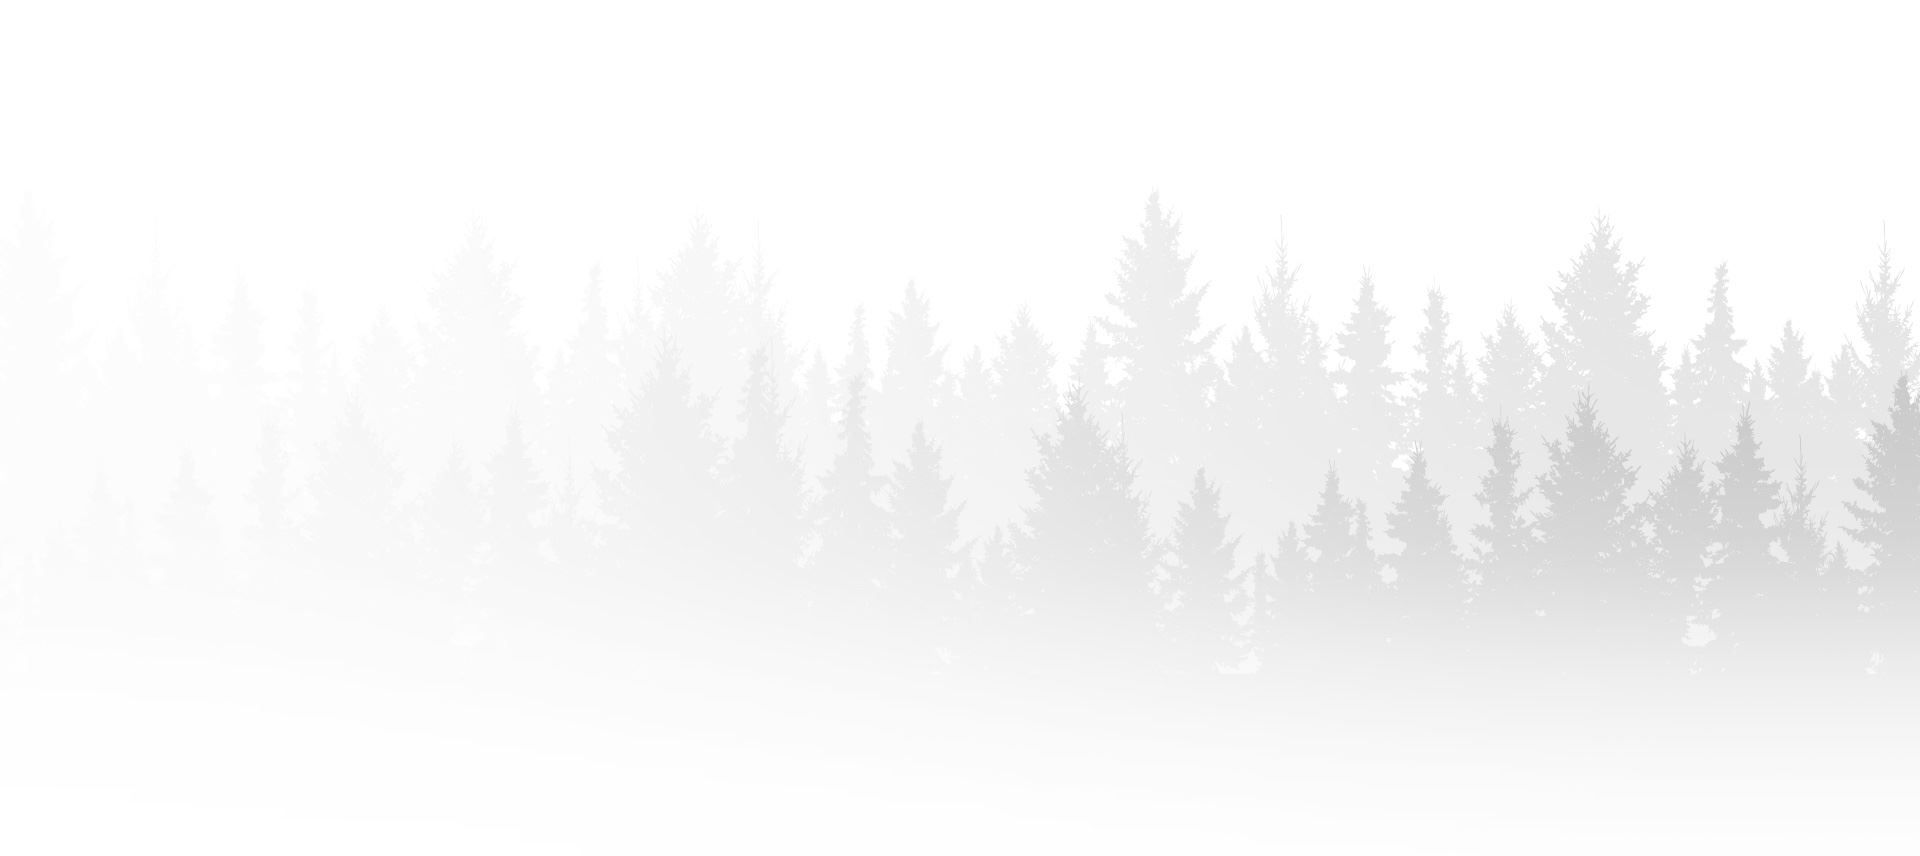 pine trees illustration in the mist